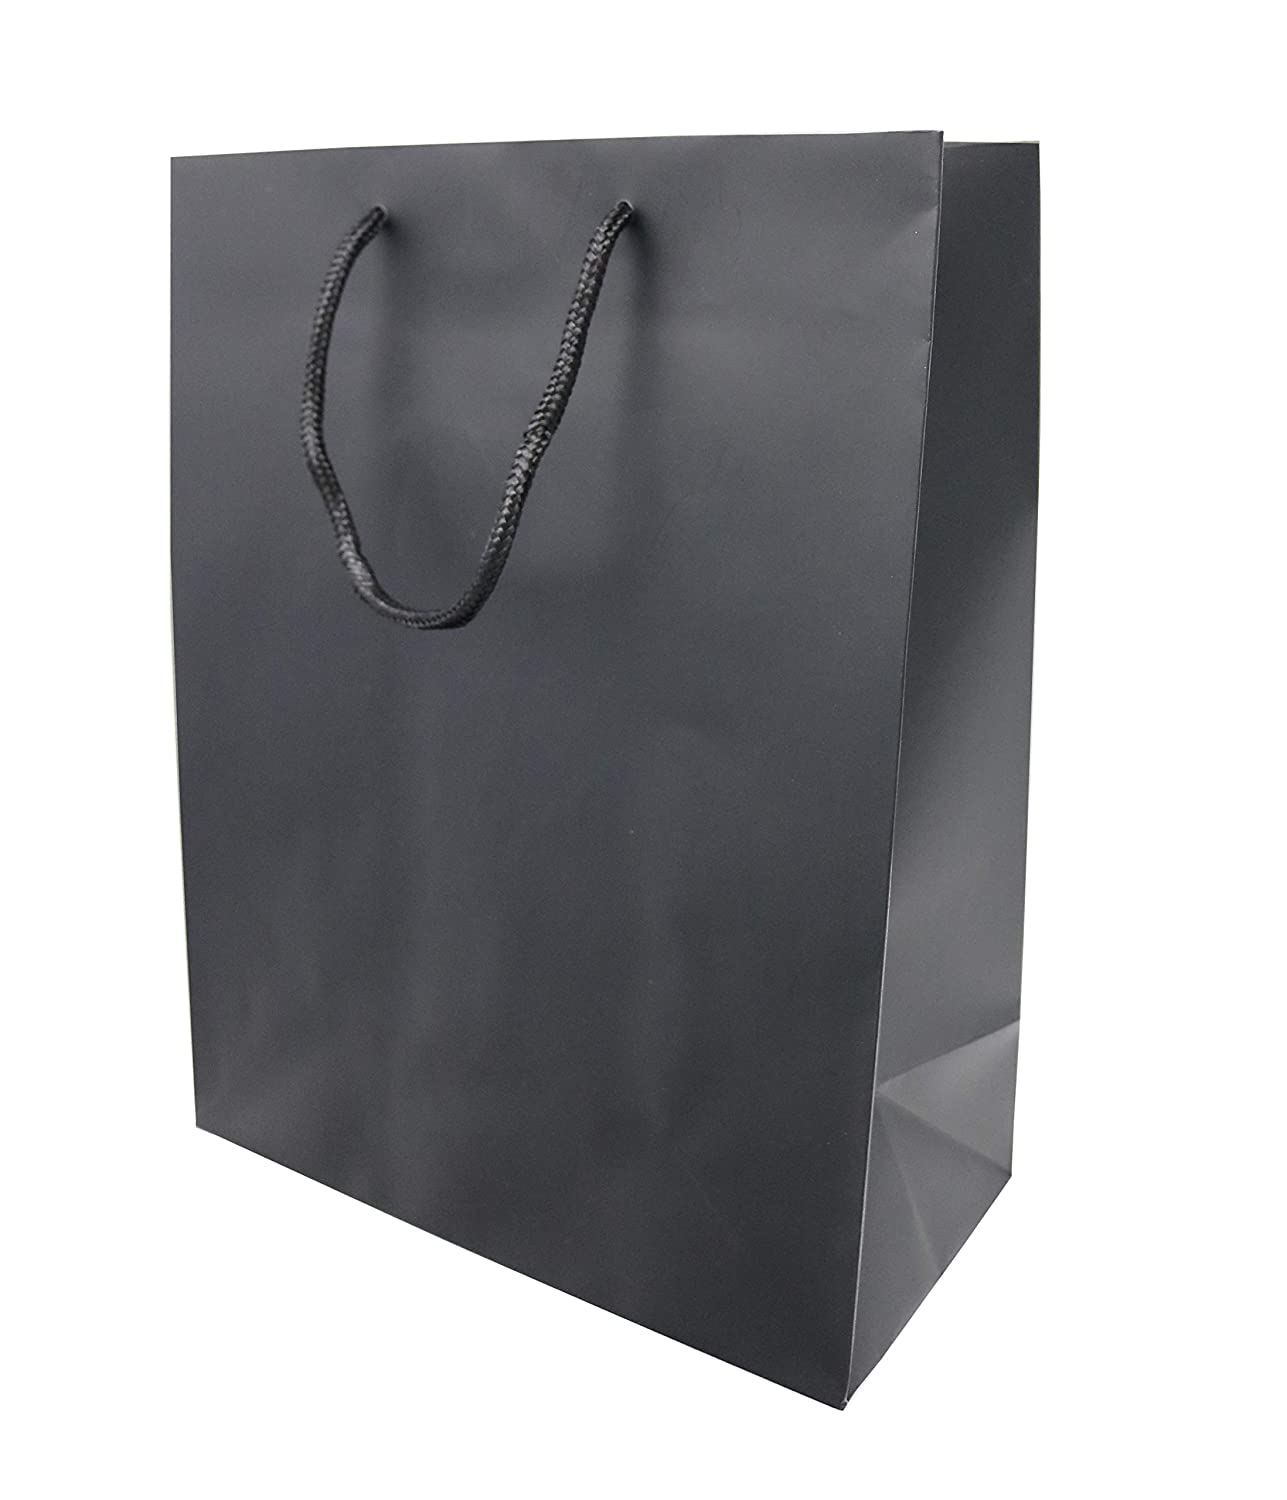 "Black Matte Euro Tote Paper Shopping Bags, Reusable Sacks with Reinforced Cardboard Gusset and Thick Top Handle for Better Grip, Great for Gifts, Party Favors, Goodies, and More -10"" L x 5"" W x 13"" H - (25 Count, Black) - Creative Bag 2BM"